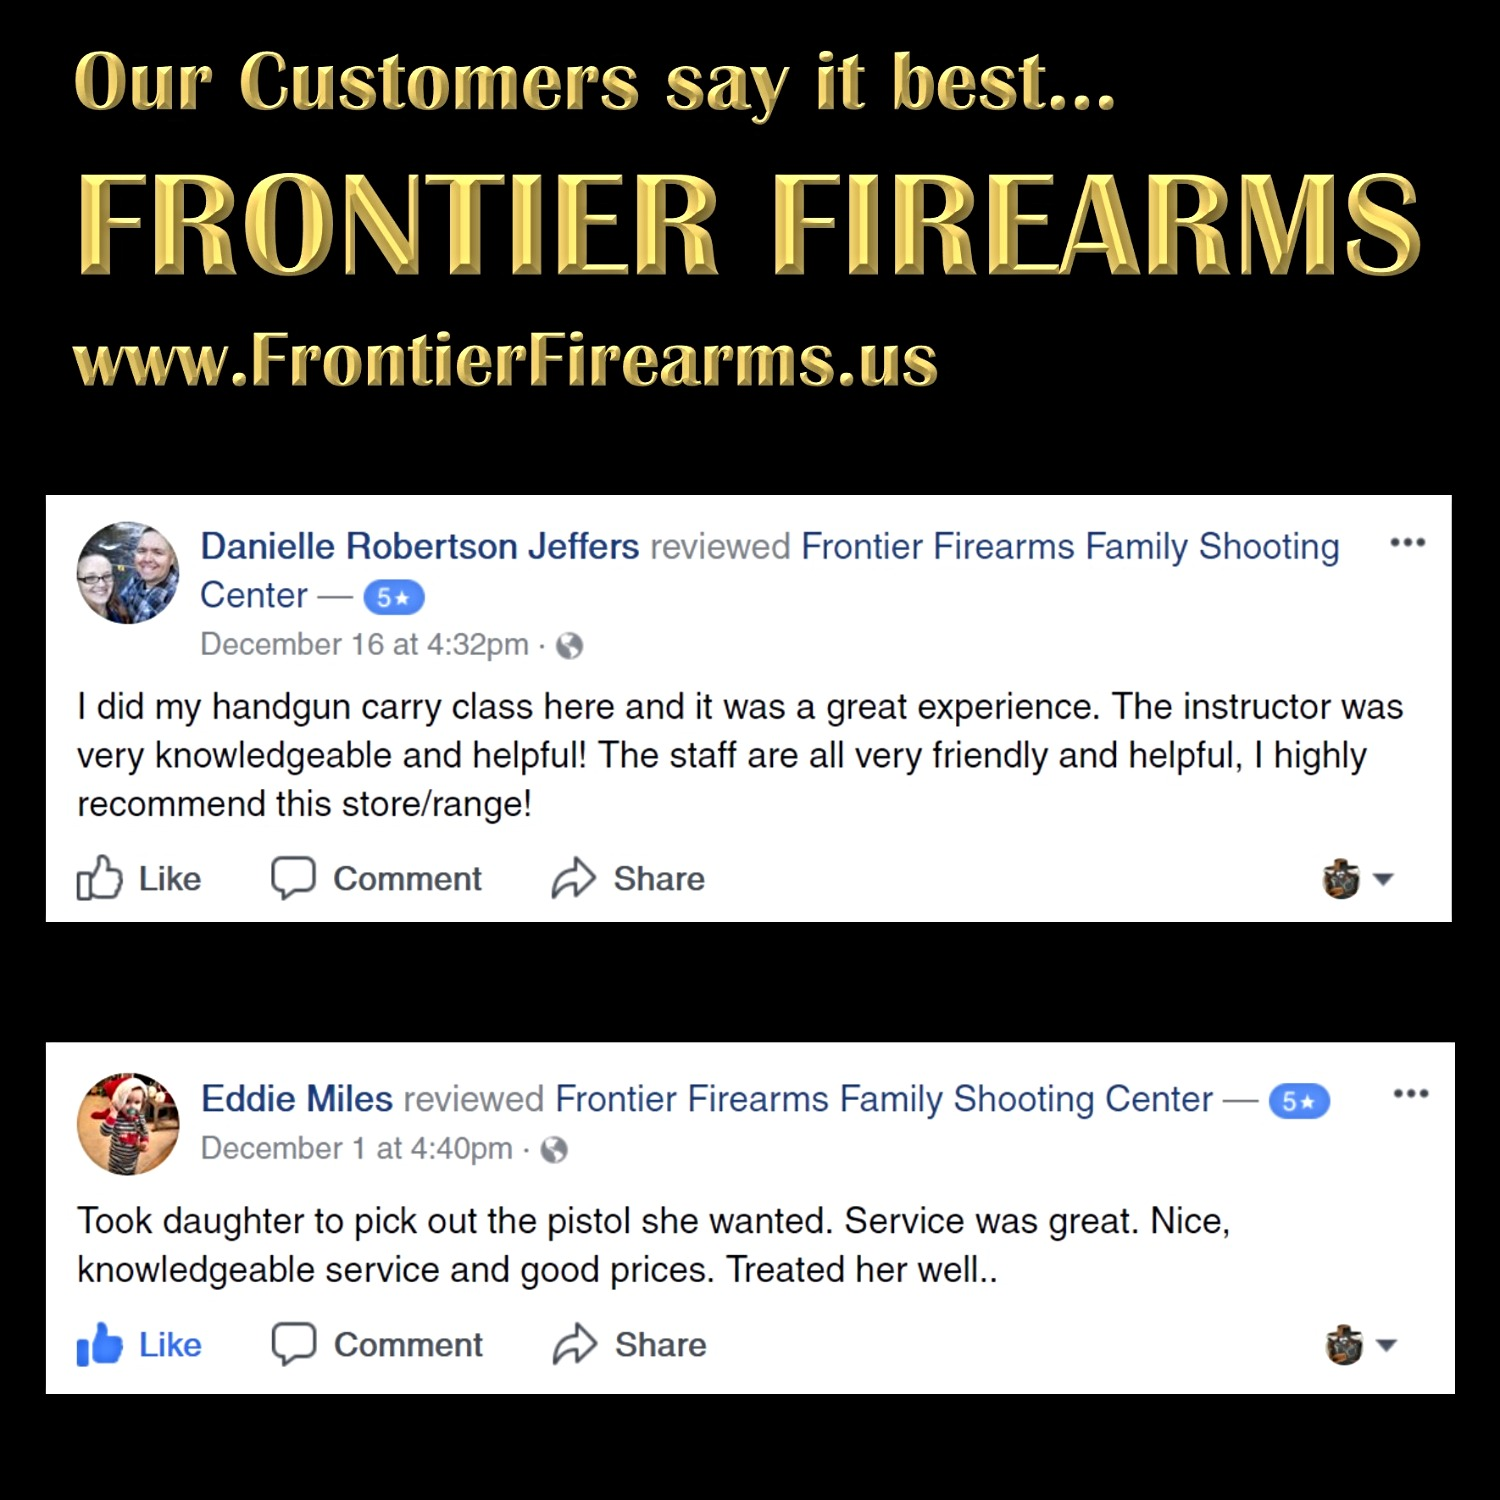 Frontier Firearms has the best customers